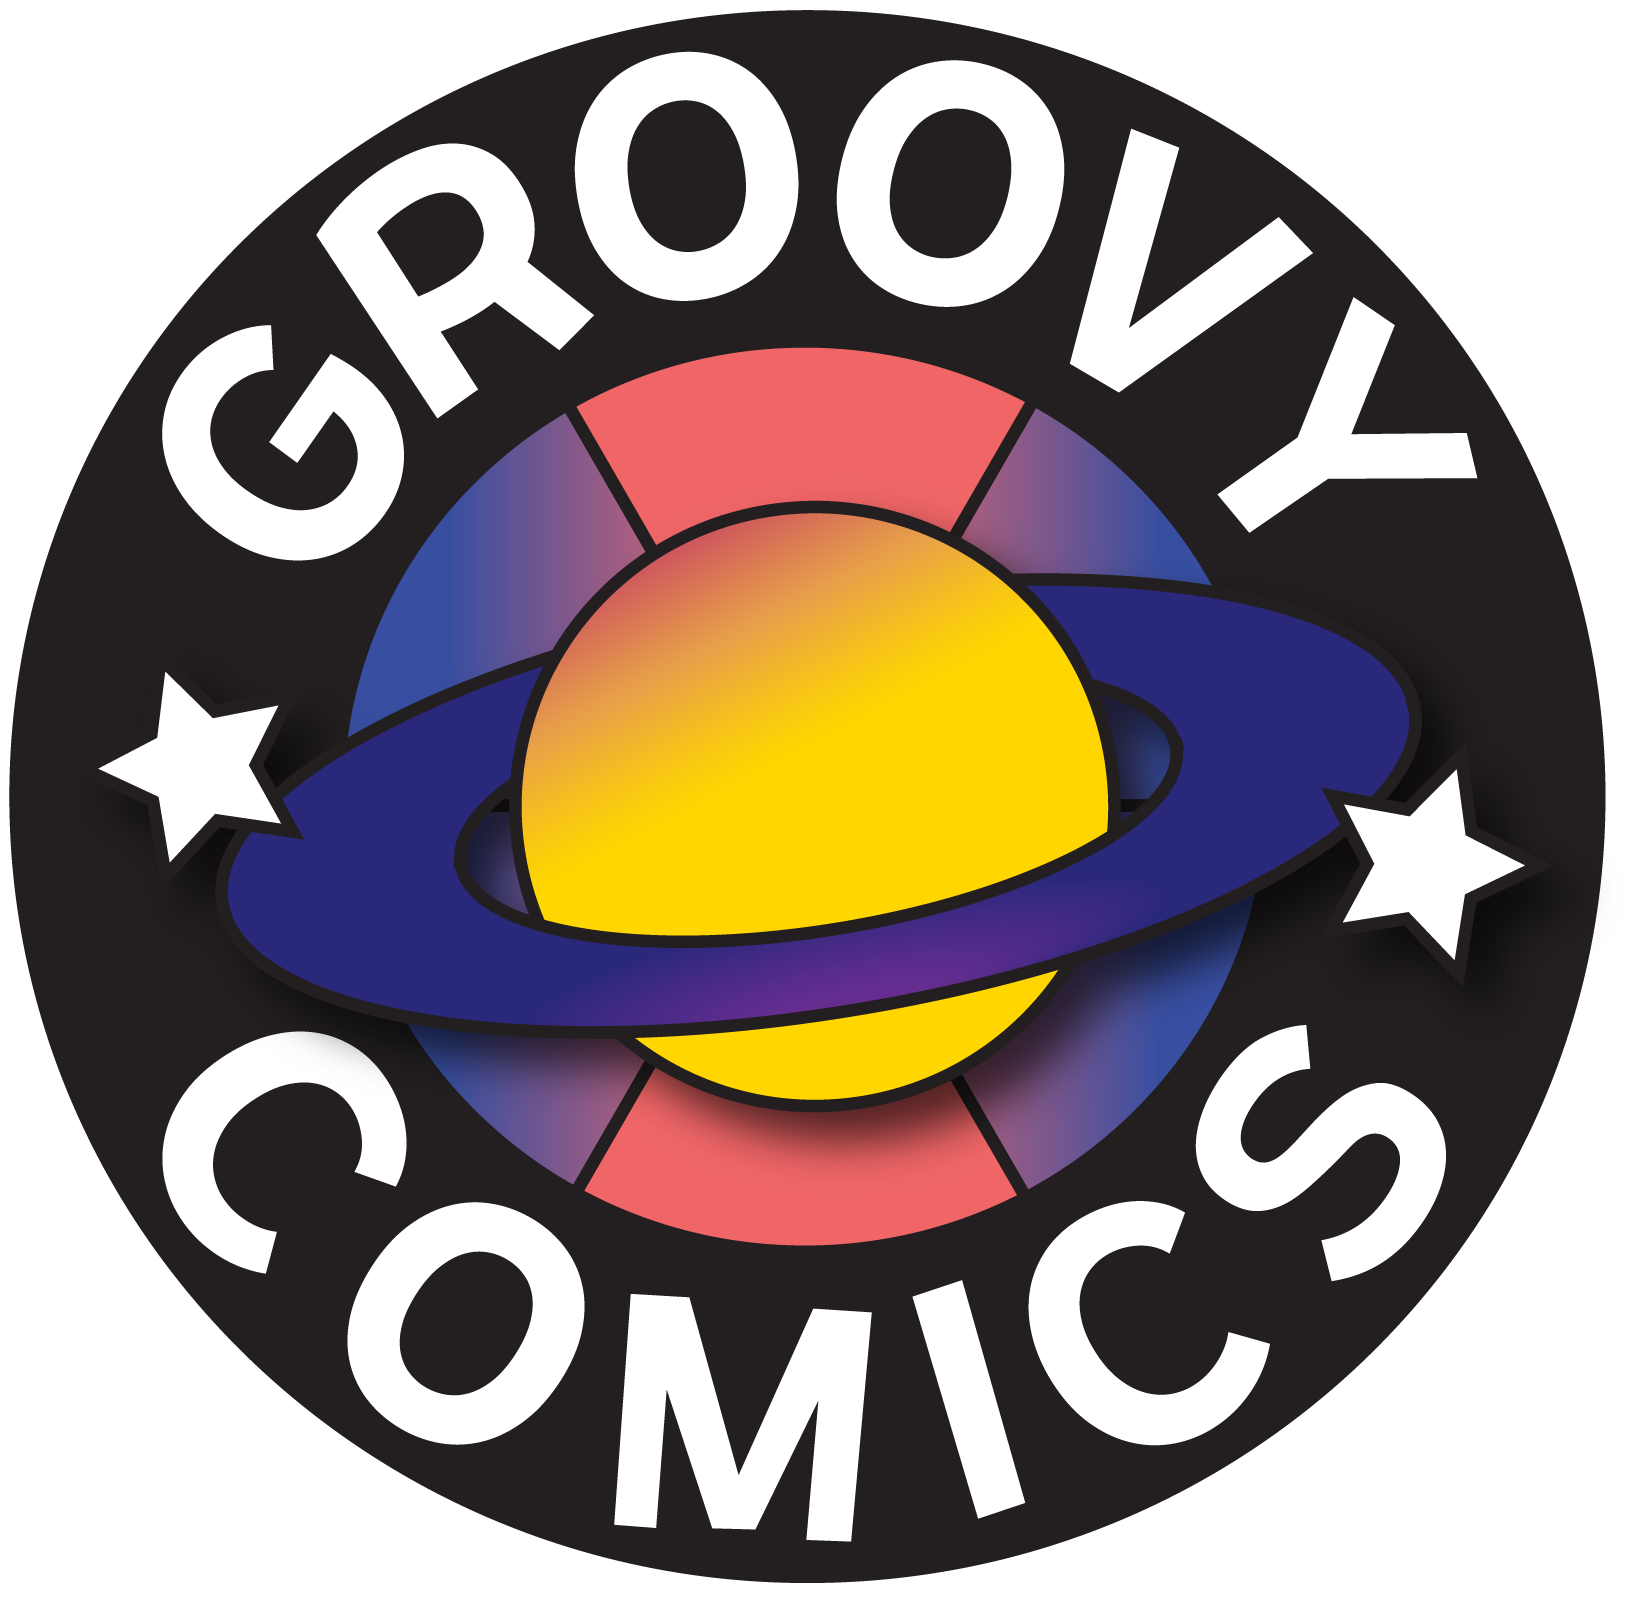 Groovy Comics